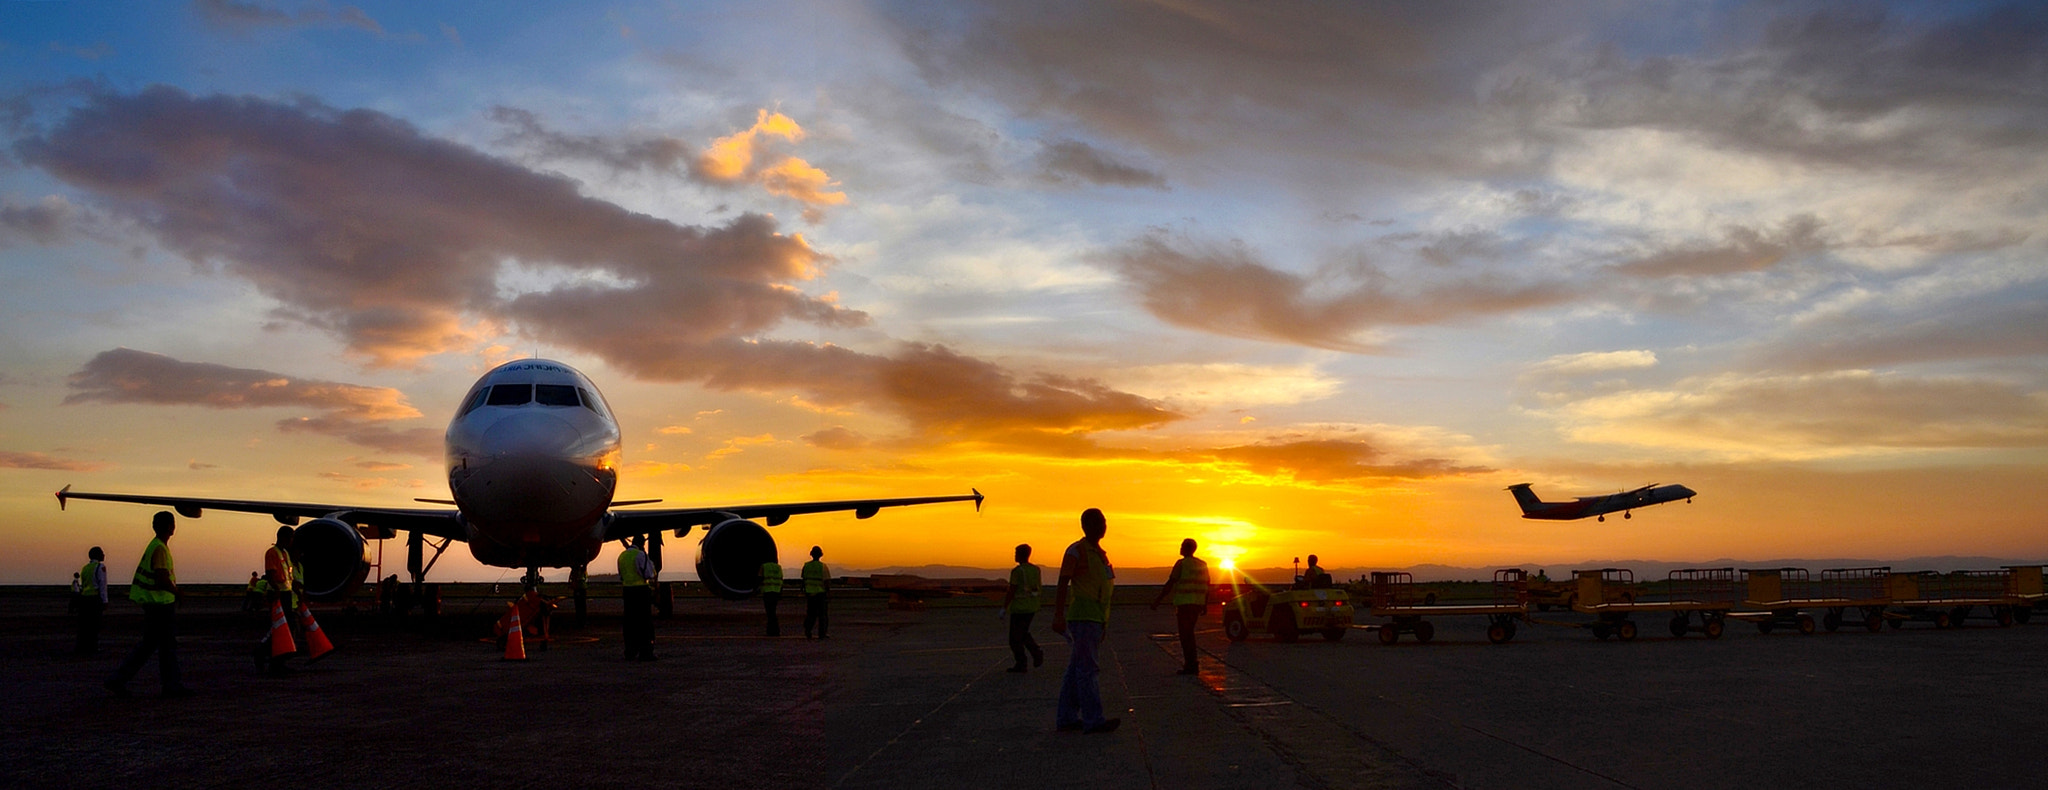 Photograph A busy day at the tarmac by Vey Telmo on 500px